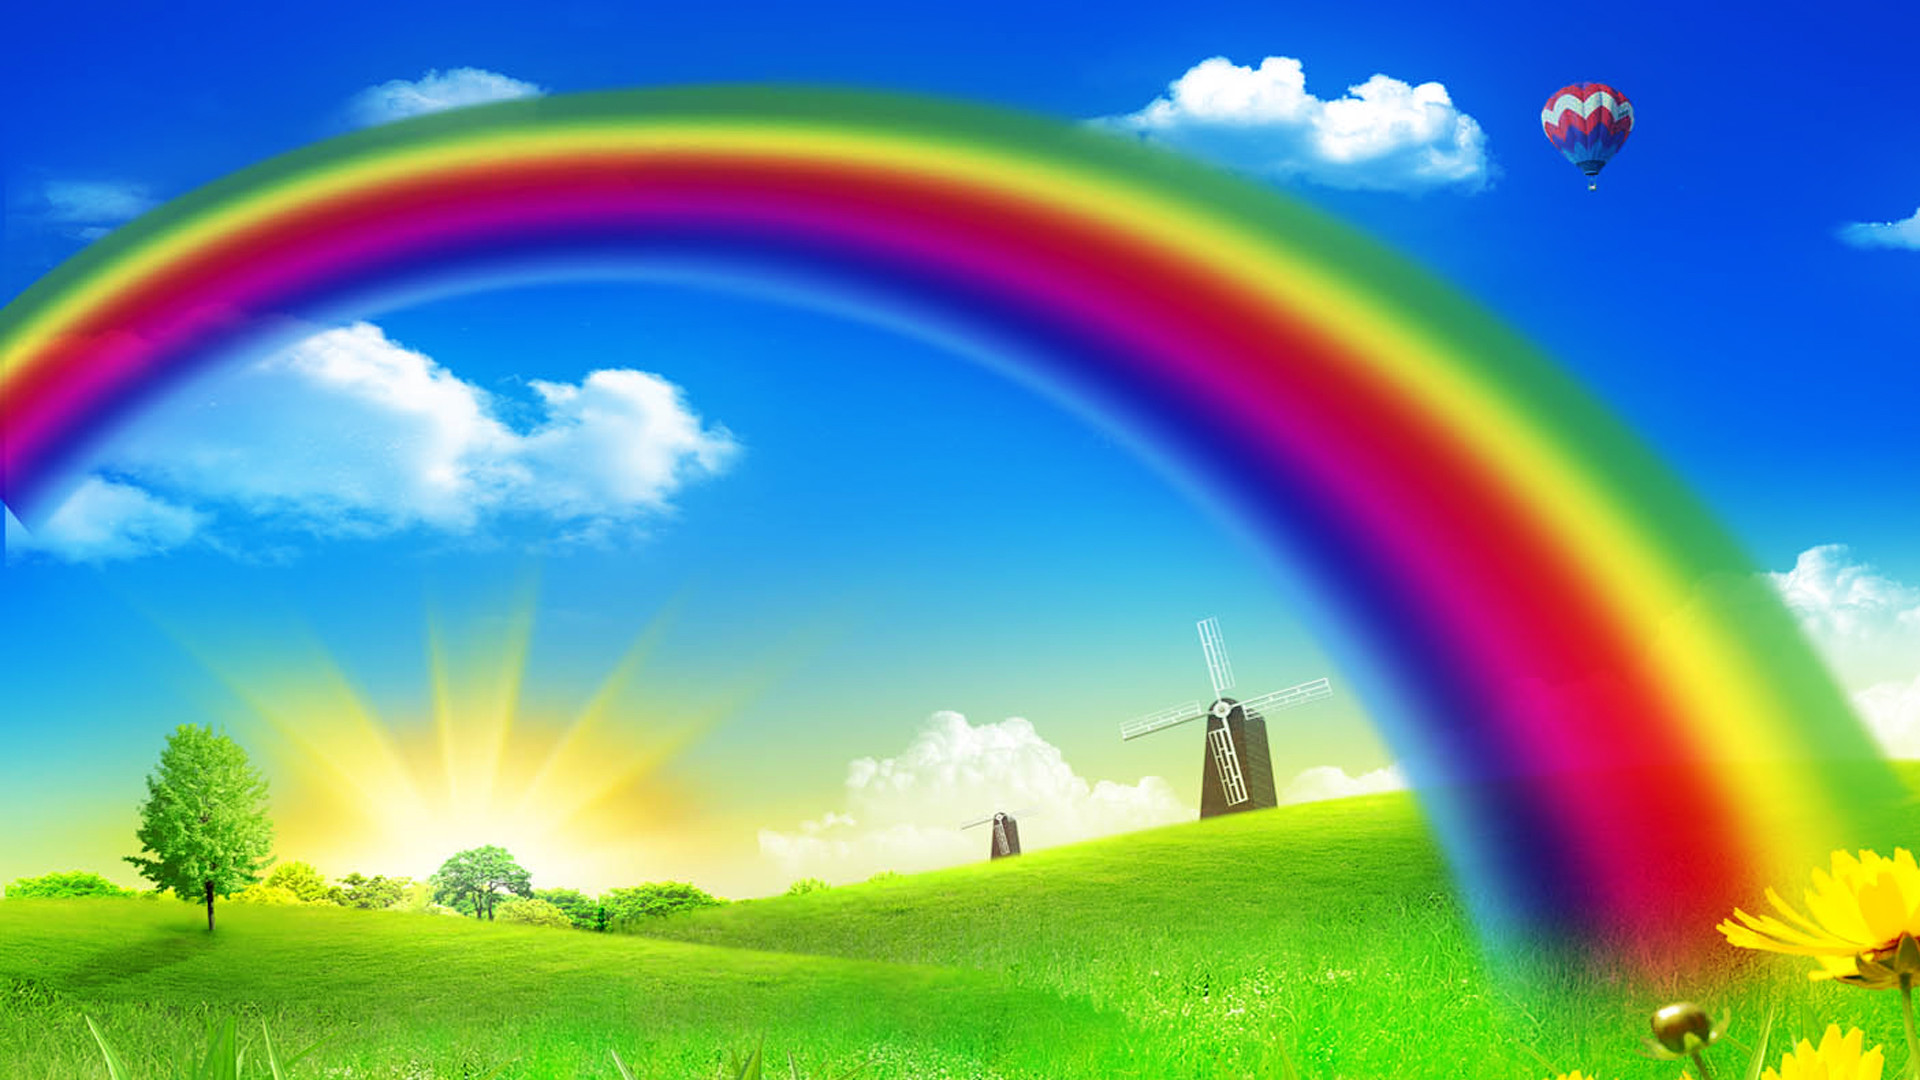 Res: 1920x1080, Backgroud Rainbow wallpapers HD.